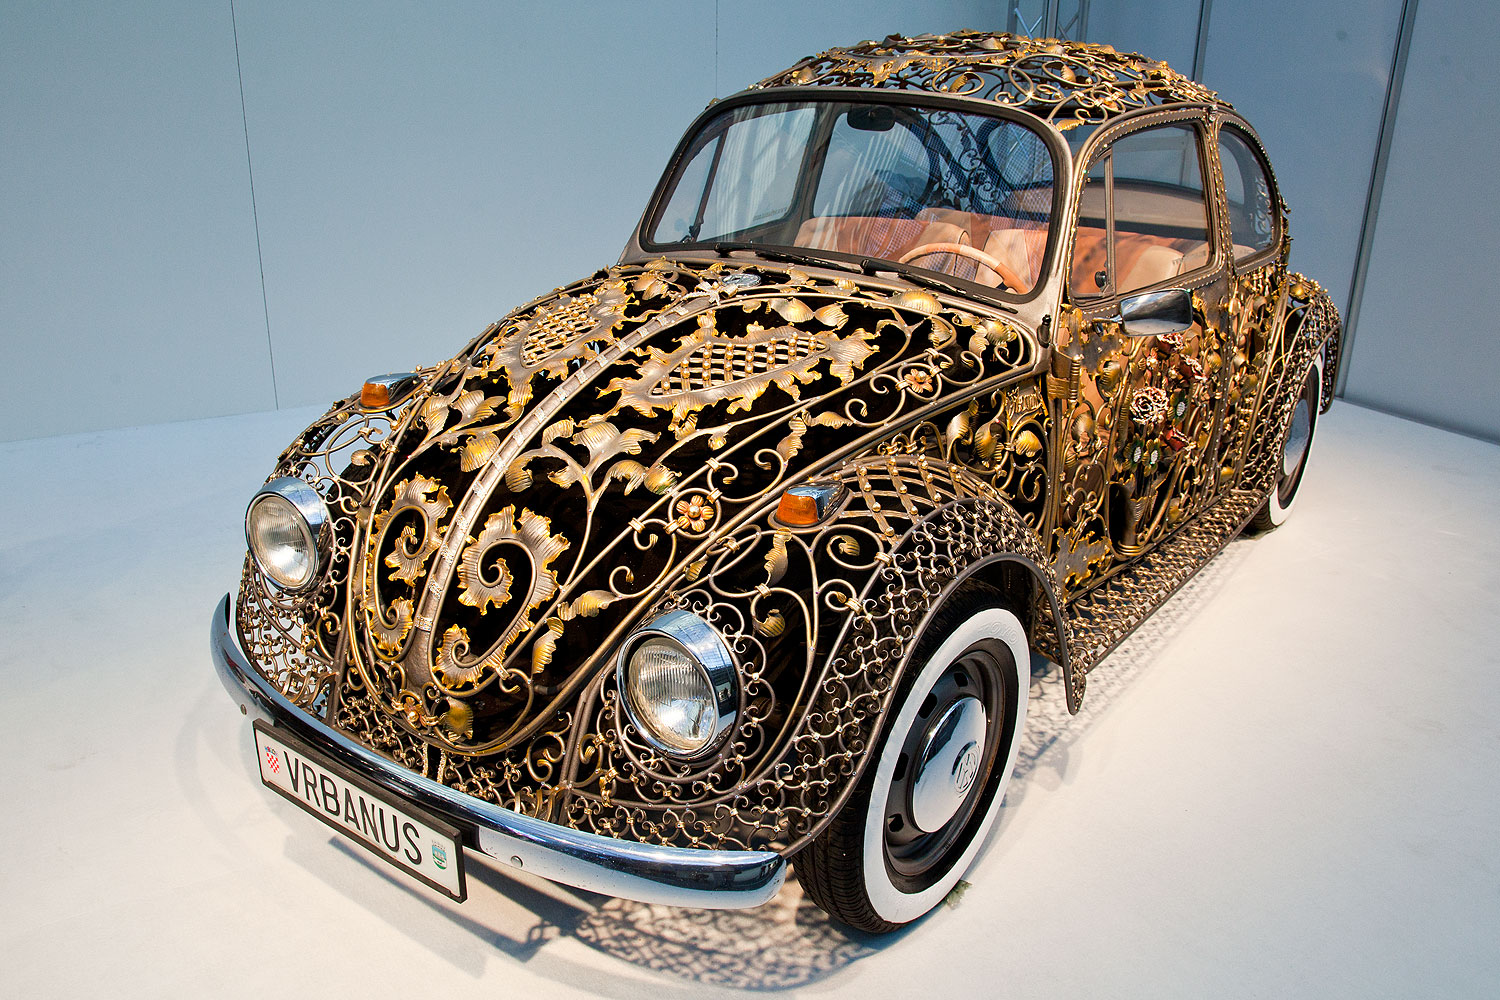 croatian_wrought_iron_vw_beetle_6974-a.j